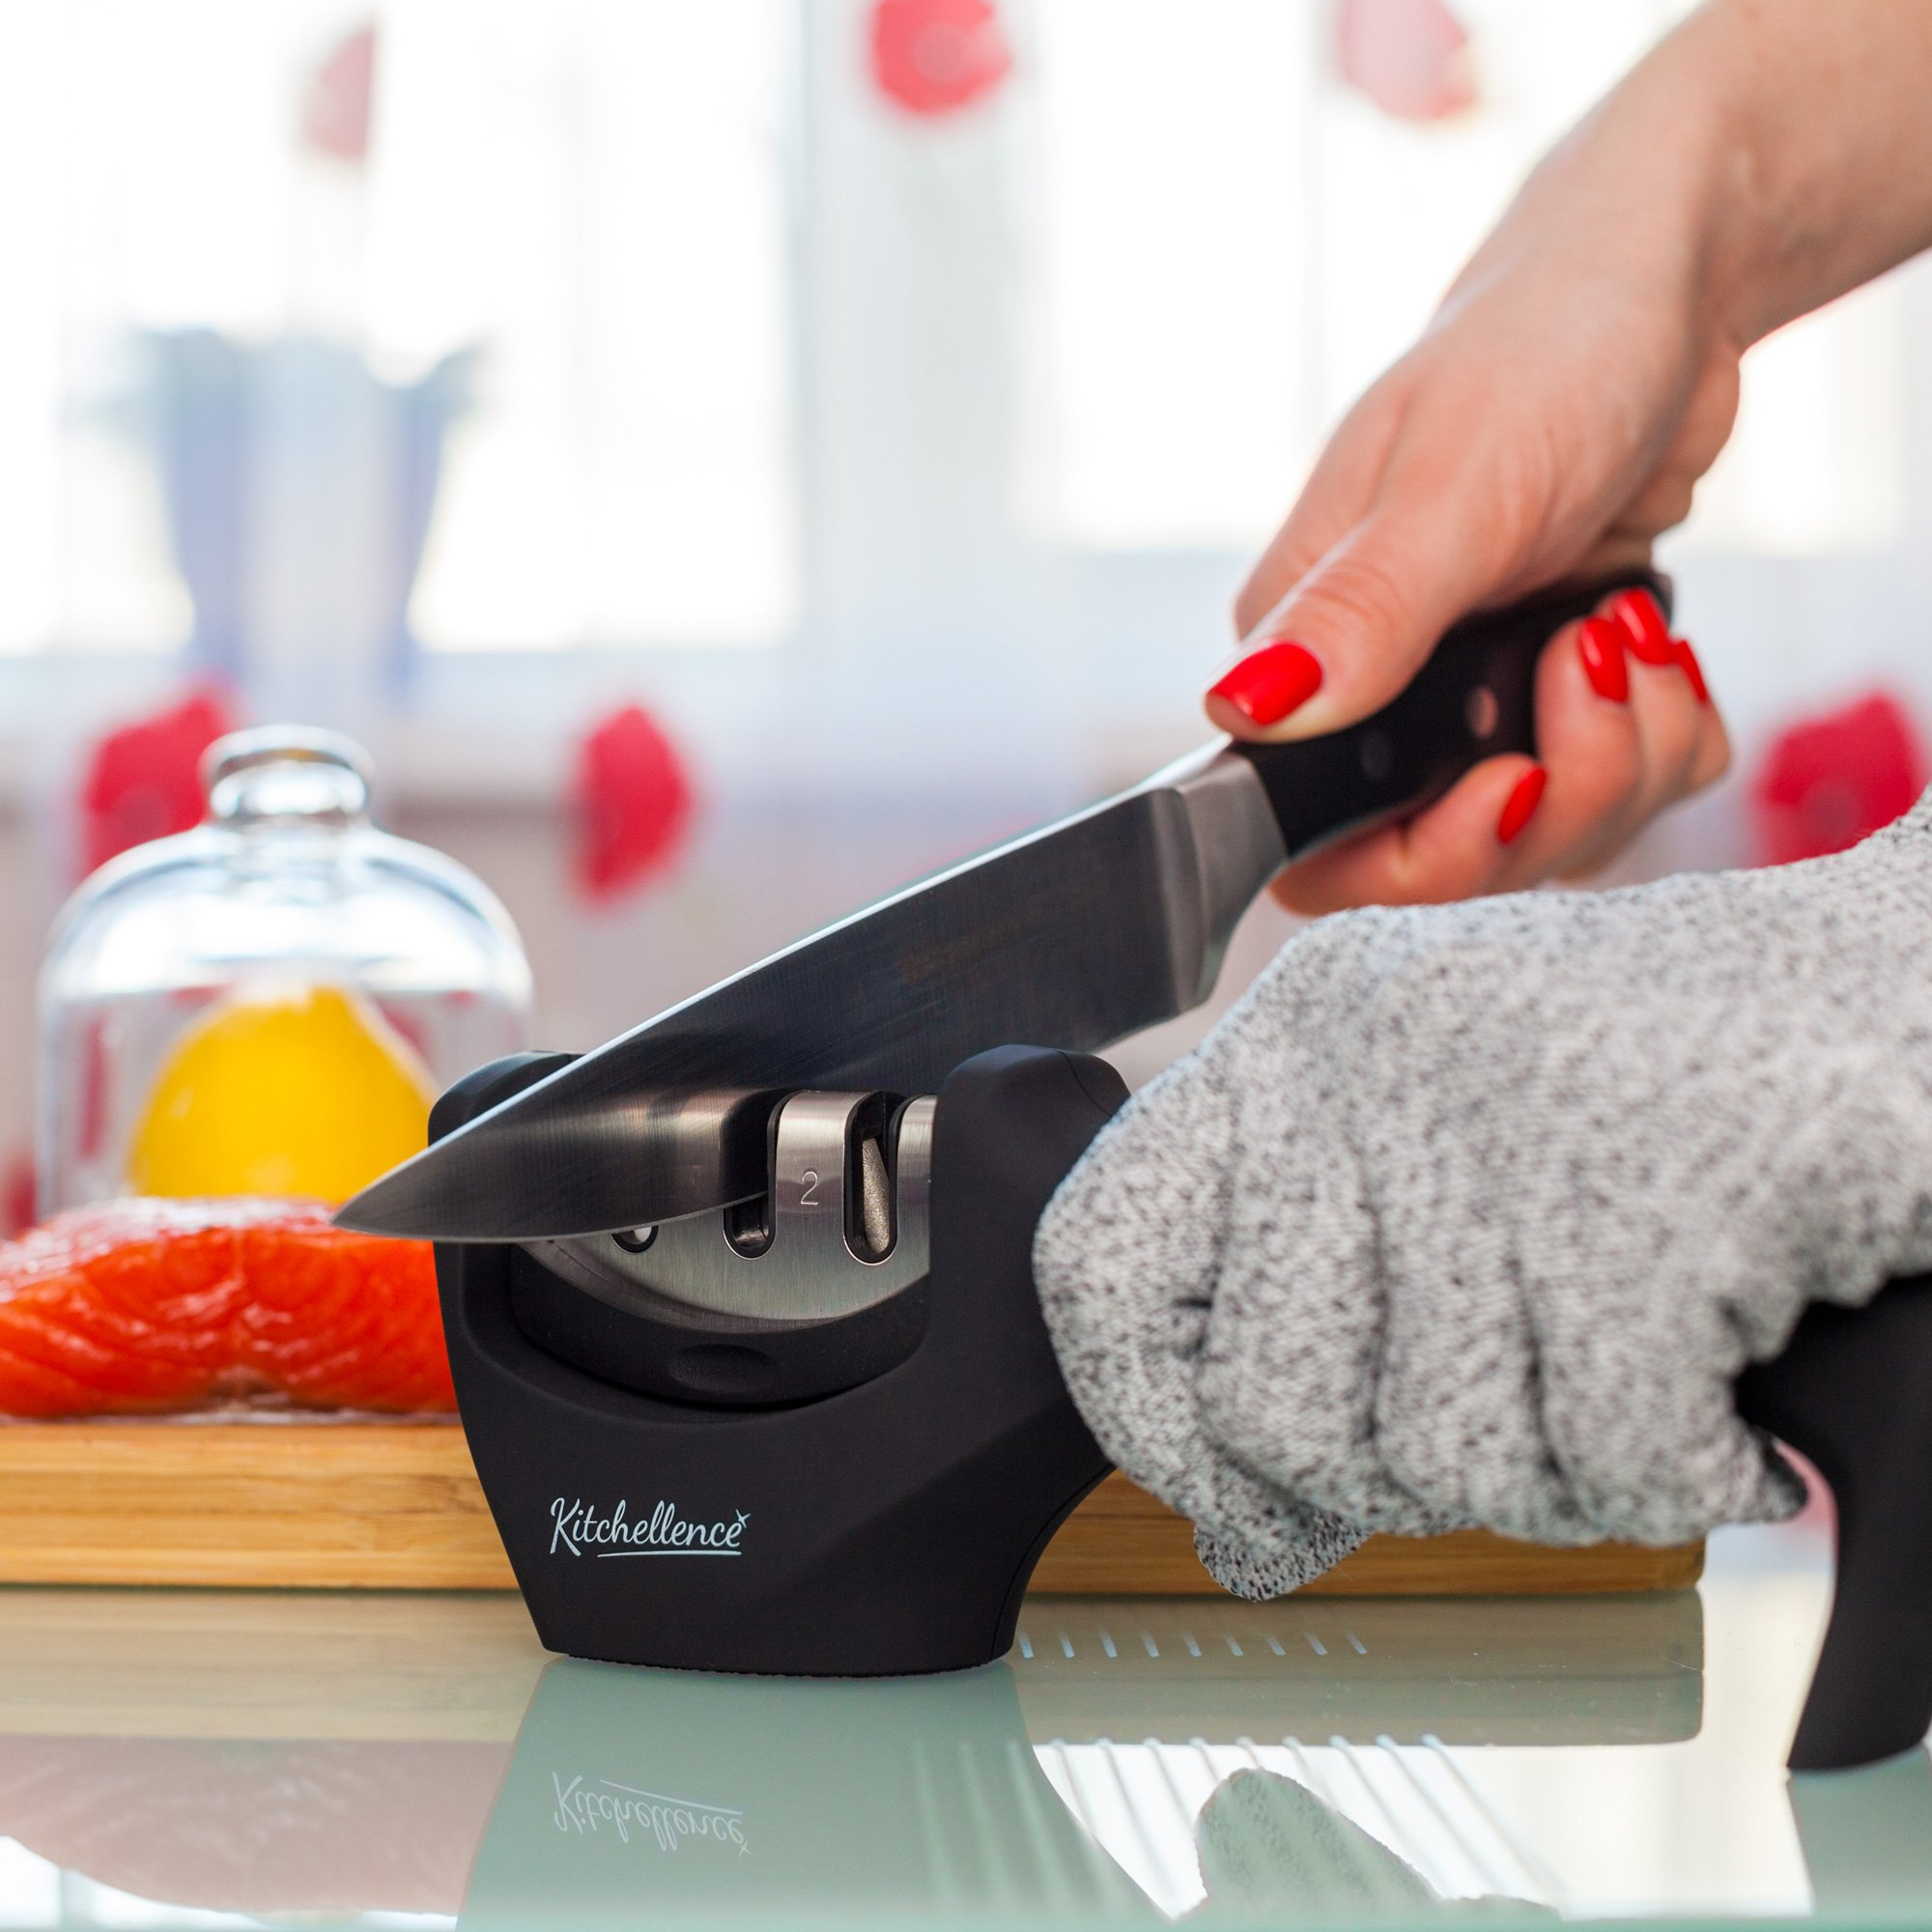 Kitchen Knife Sharpener - 3-Stage Knife Sharpening Tool Helps Repair, Restore and Polish Blades - Cut-Resistant Glove Included (Black) by Kitchellence (Image #8)